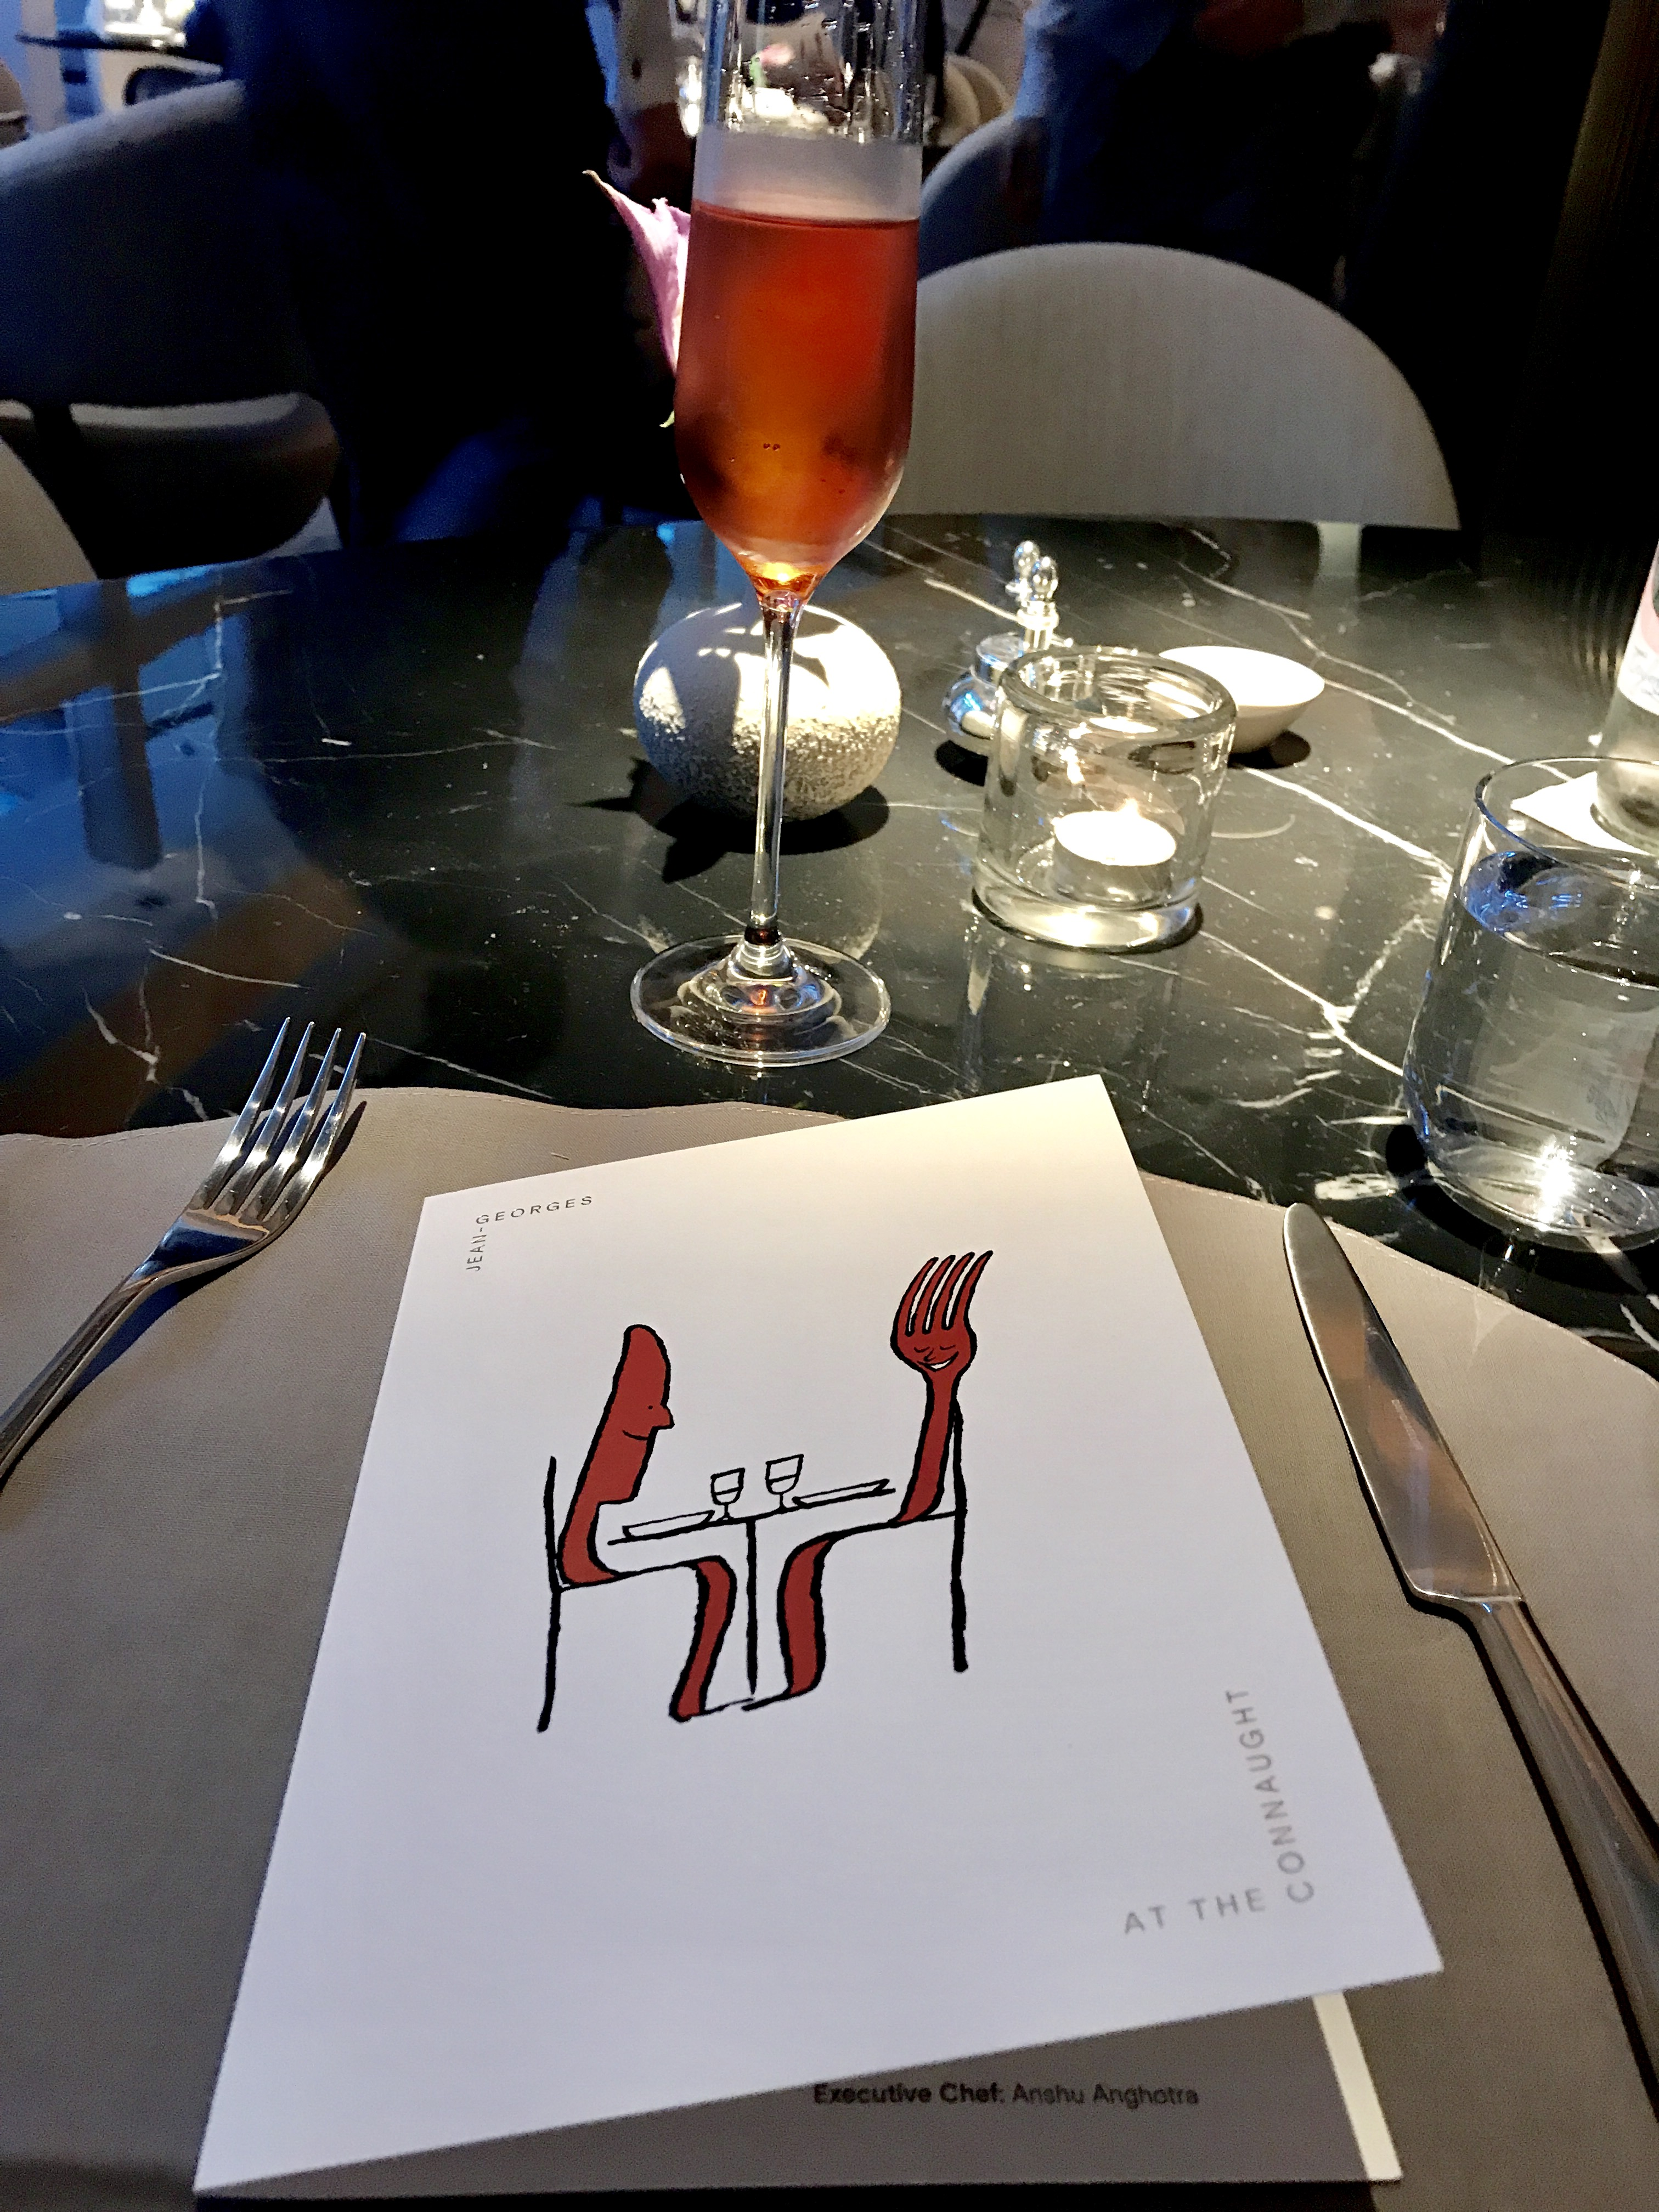 Jean Georges restaurant at The Connaught hotel